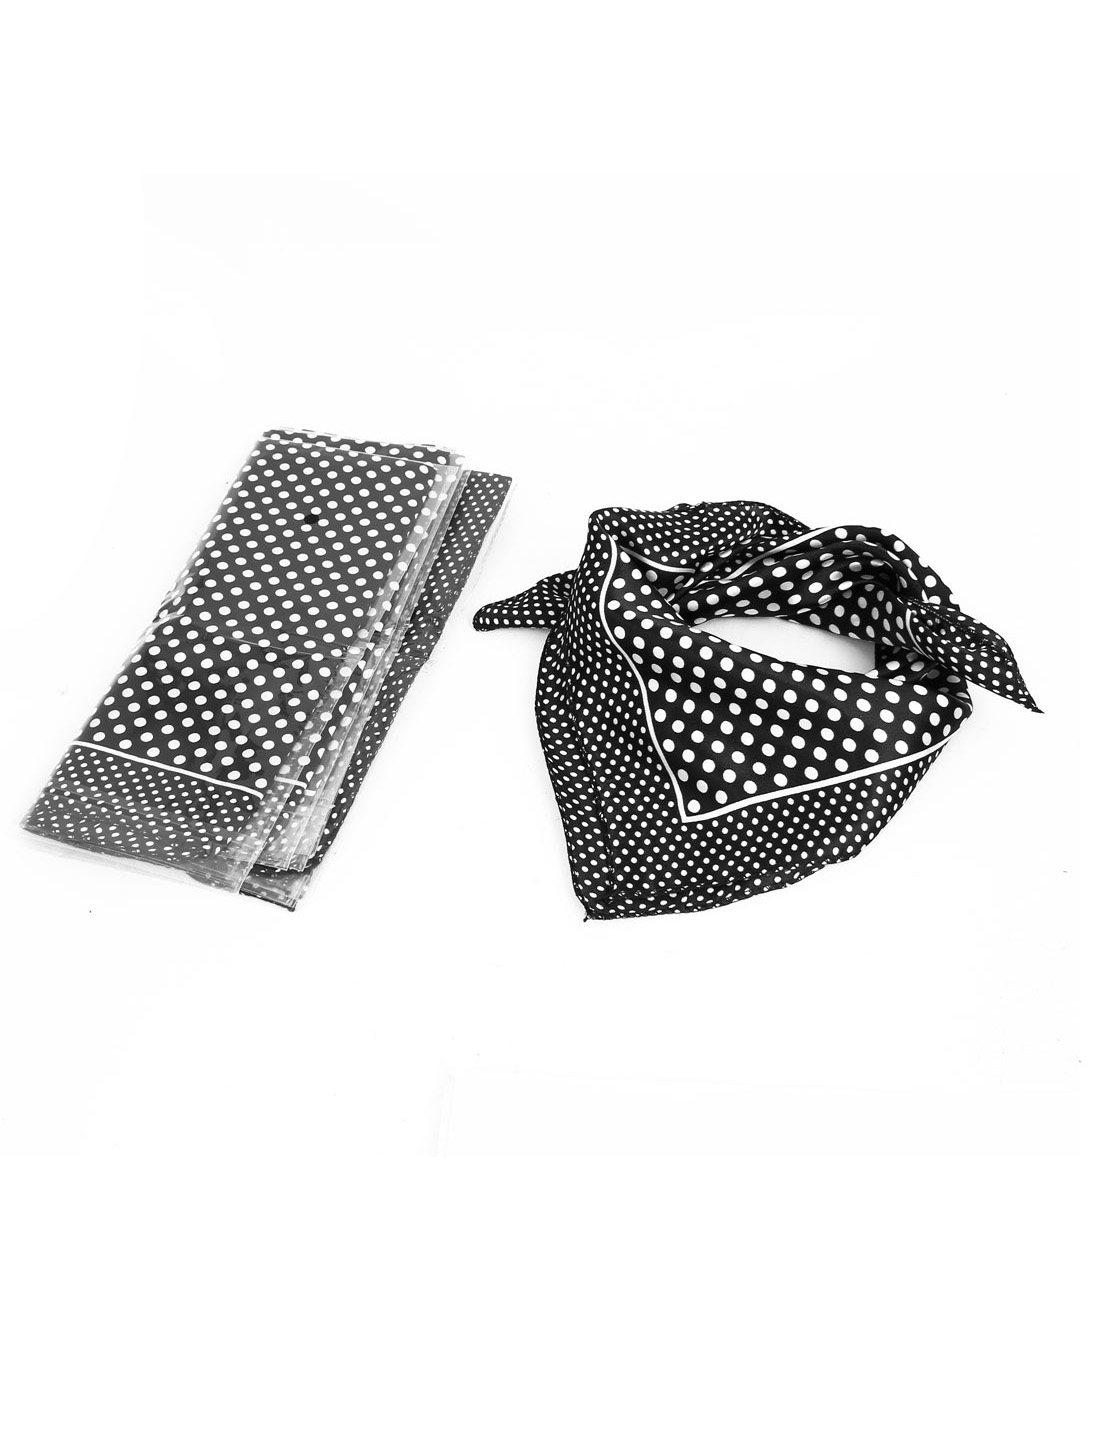 Women Polyester Fashion Round Dot Square Scarf Wrap Black White 5pcs